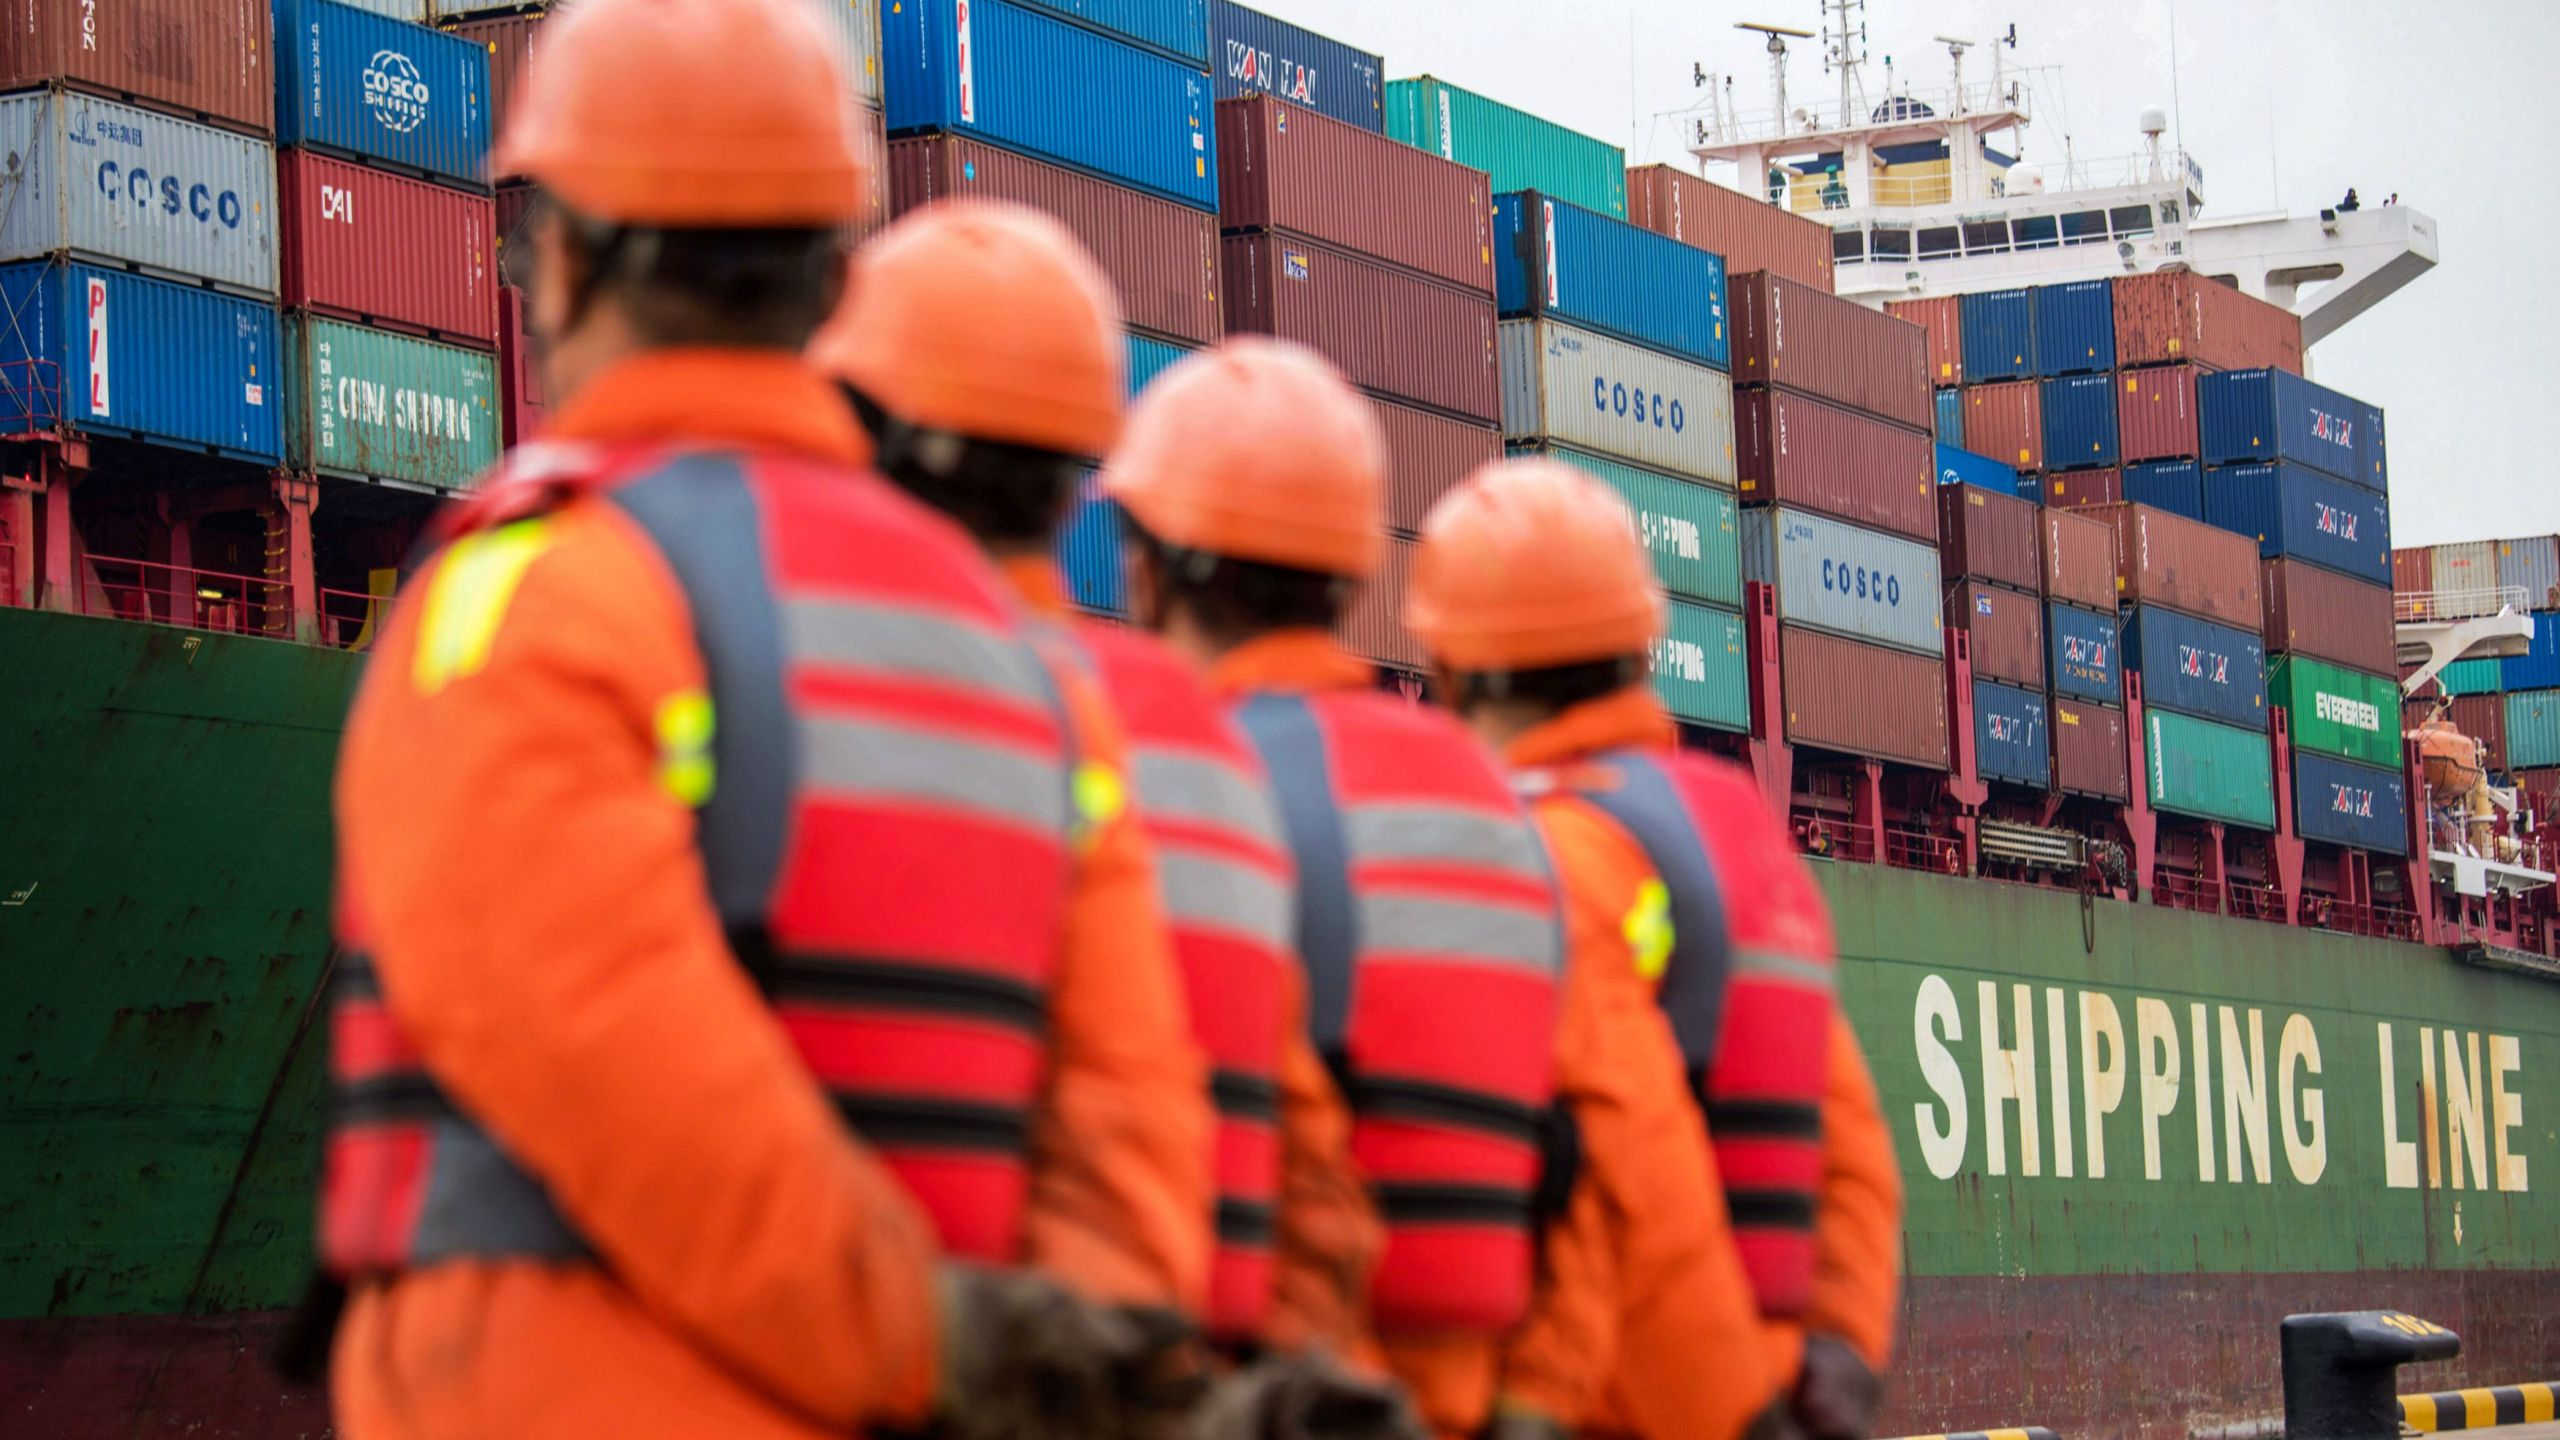 Employees look at a cargo ship at a port in Qingdao, east China's Shandong province on Nov. 8, 2018. (Credit: STR/AFP/Getty Images)